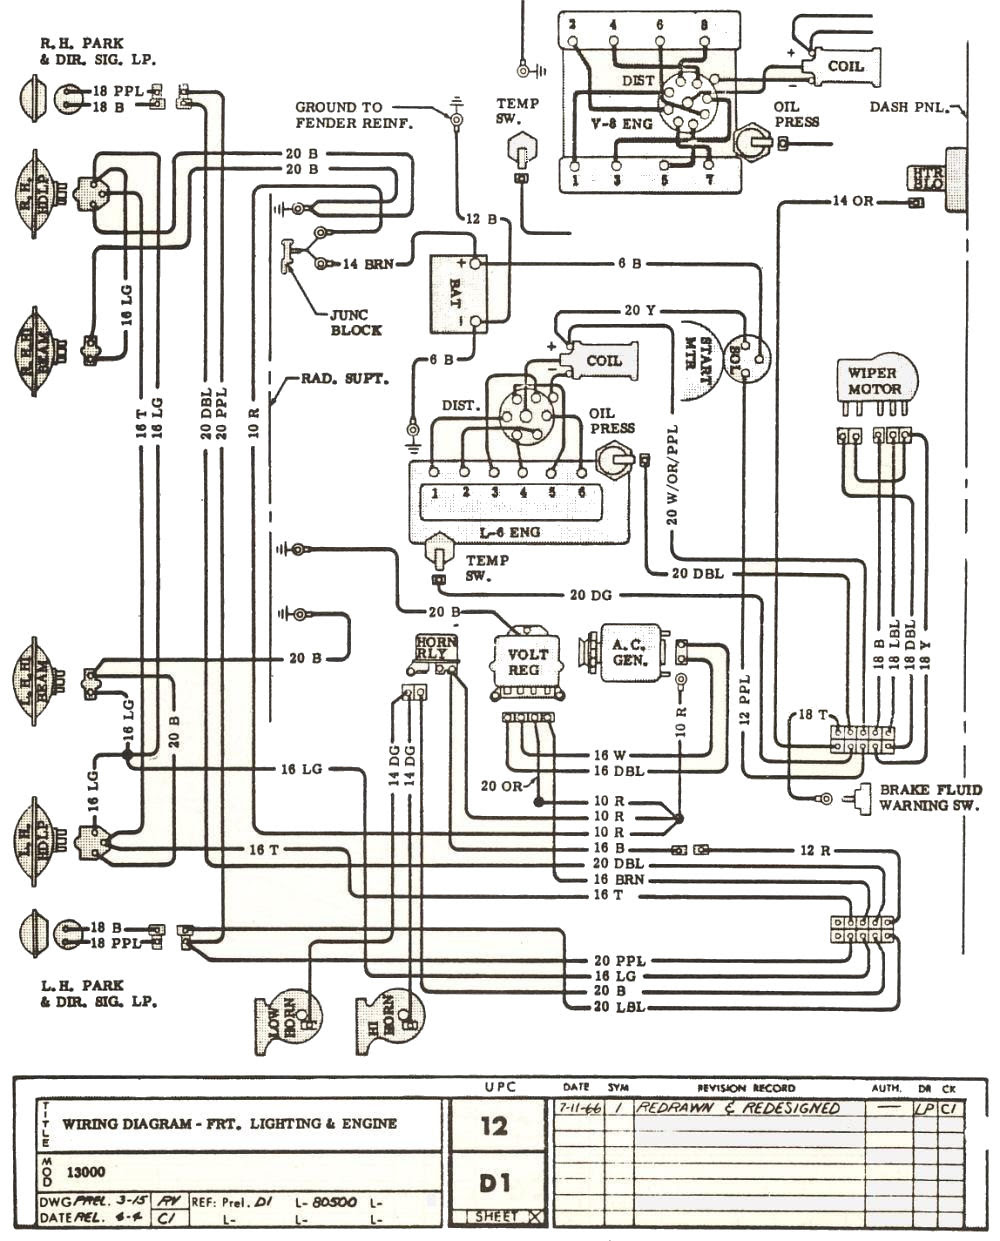 1967 Chevelle Wiring Diagram Online Wiring Diagram Dedicated Dedicated Pasticceriagele It